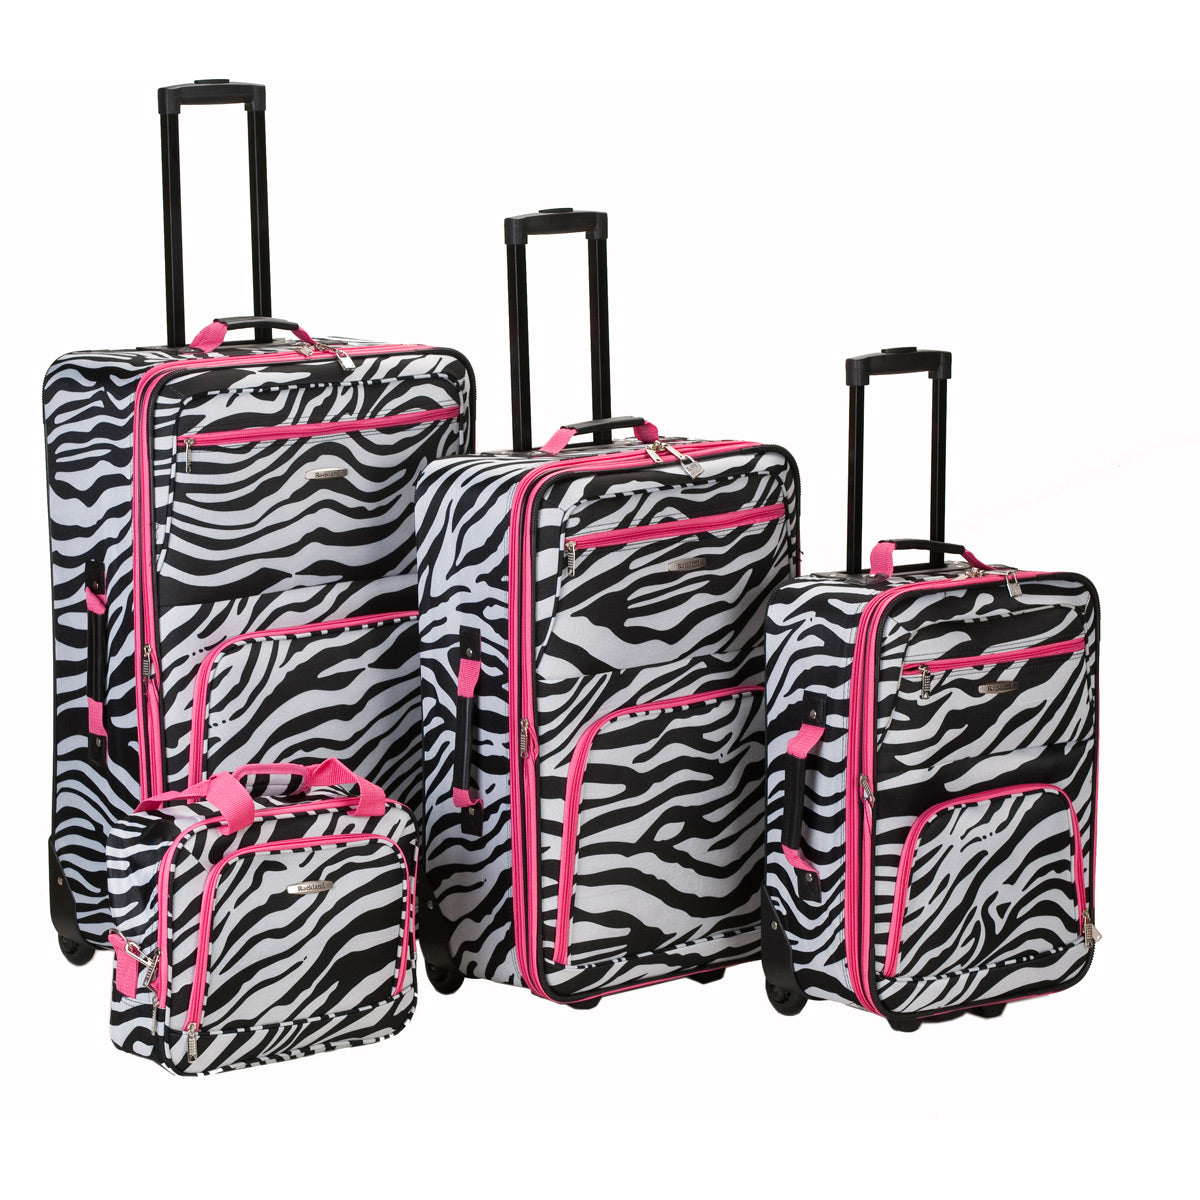 Rockland Luggage 4 Piece Expandable Luggage Set